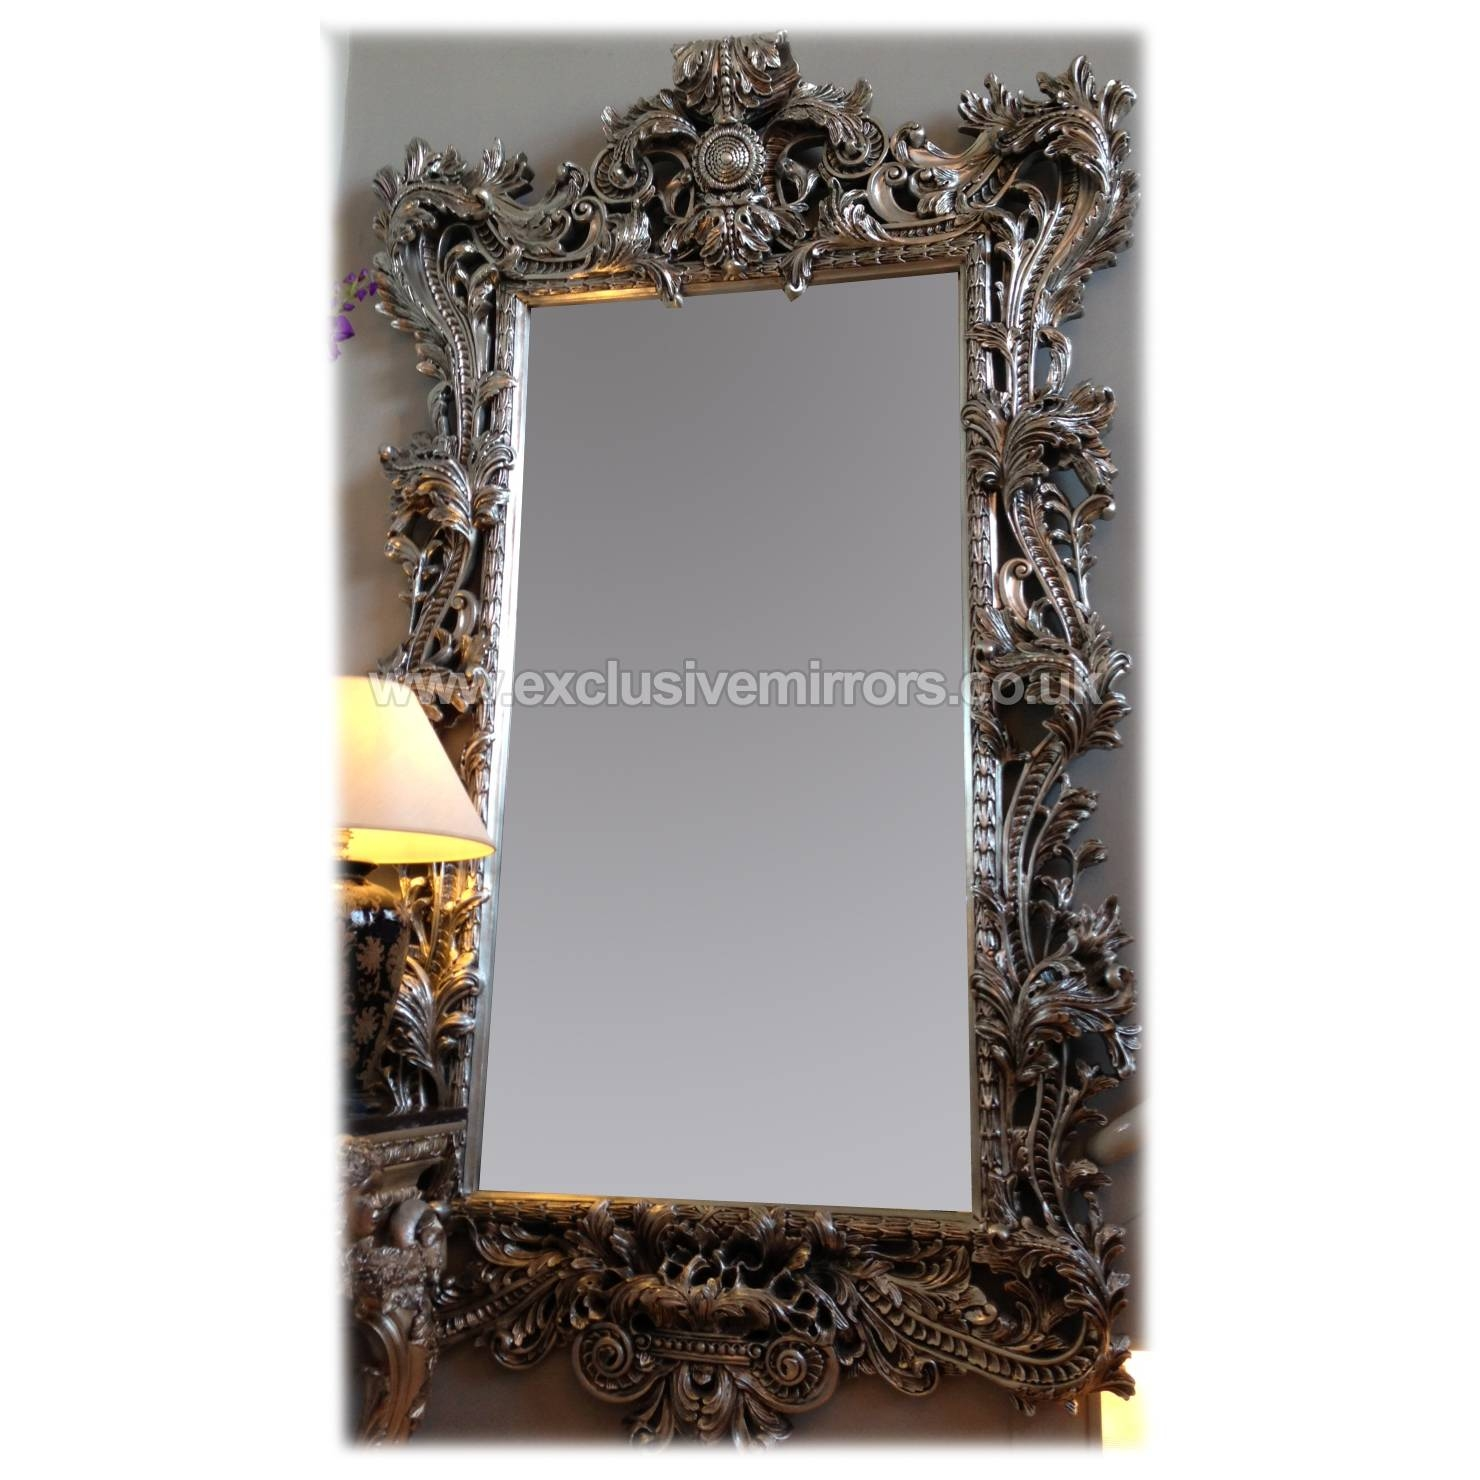 Enchanting Ornate Wall Mirrors Uk Wall Mirrors Ornate Wall Antique pertaining to Large Silver Vintage Mirrors (Image 5 of 15)